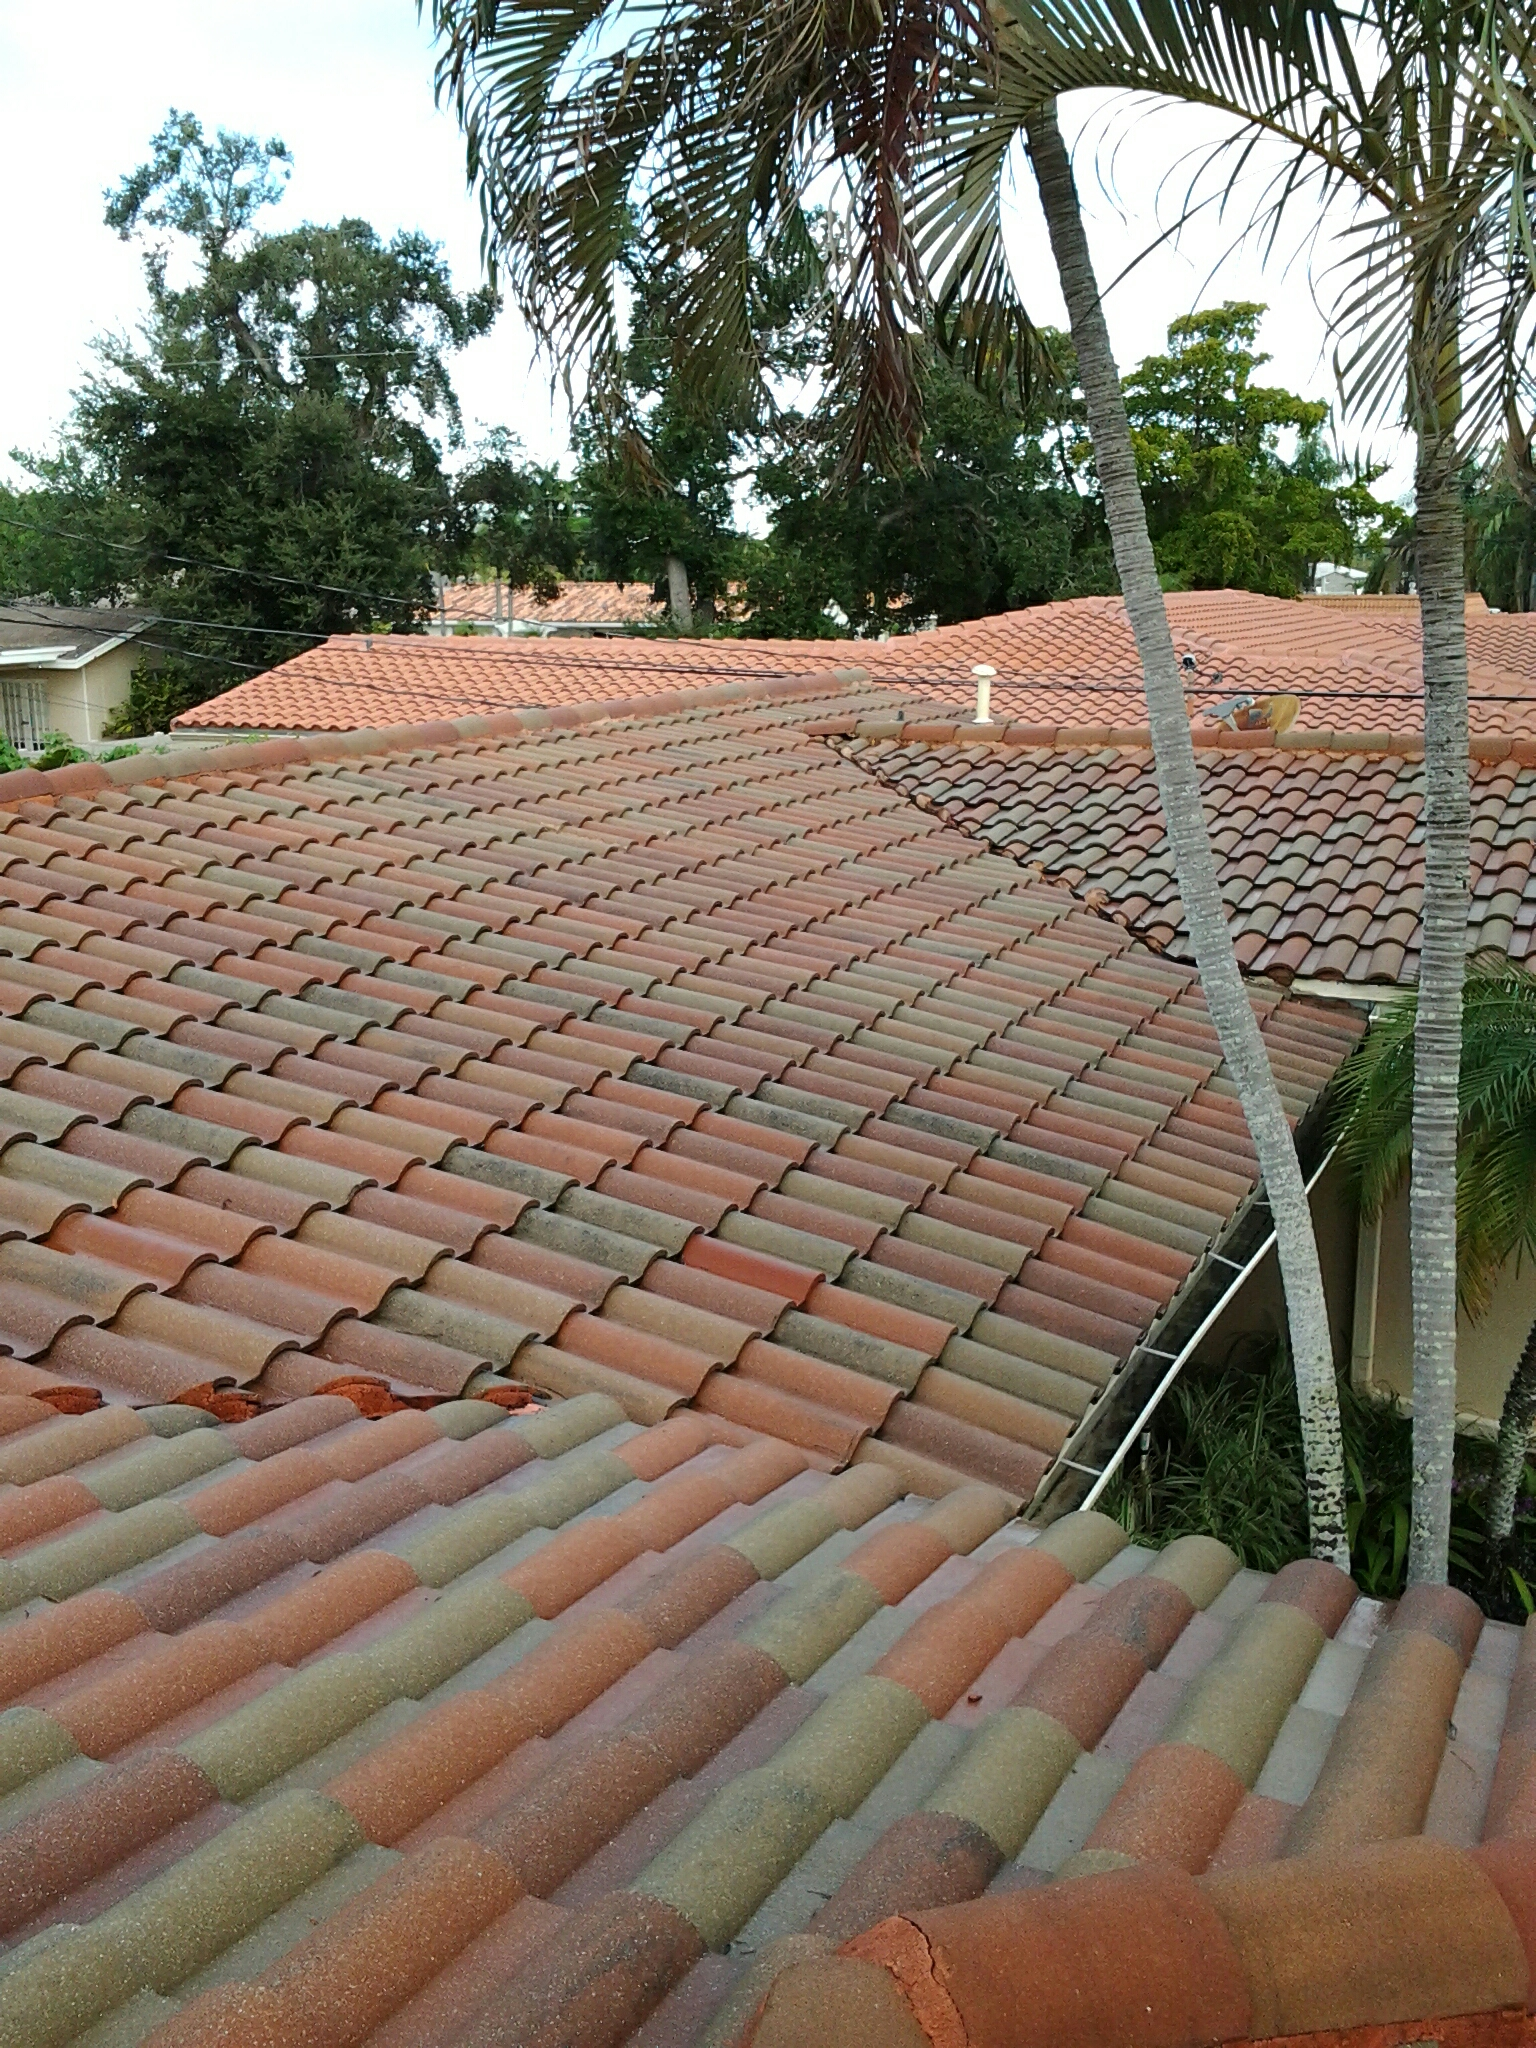 Miami, FL - Clean edges and roofacide roof